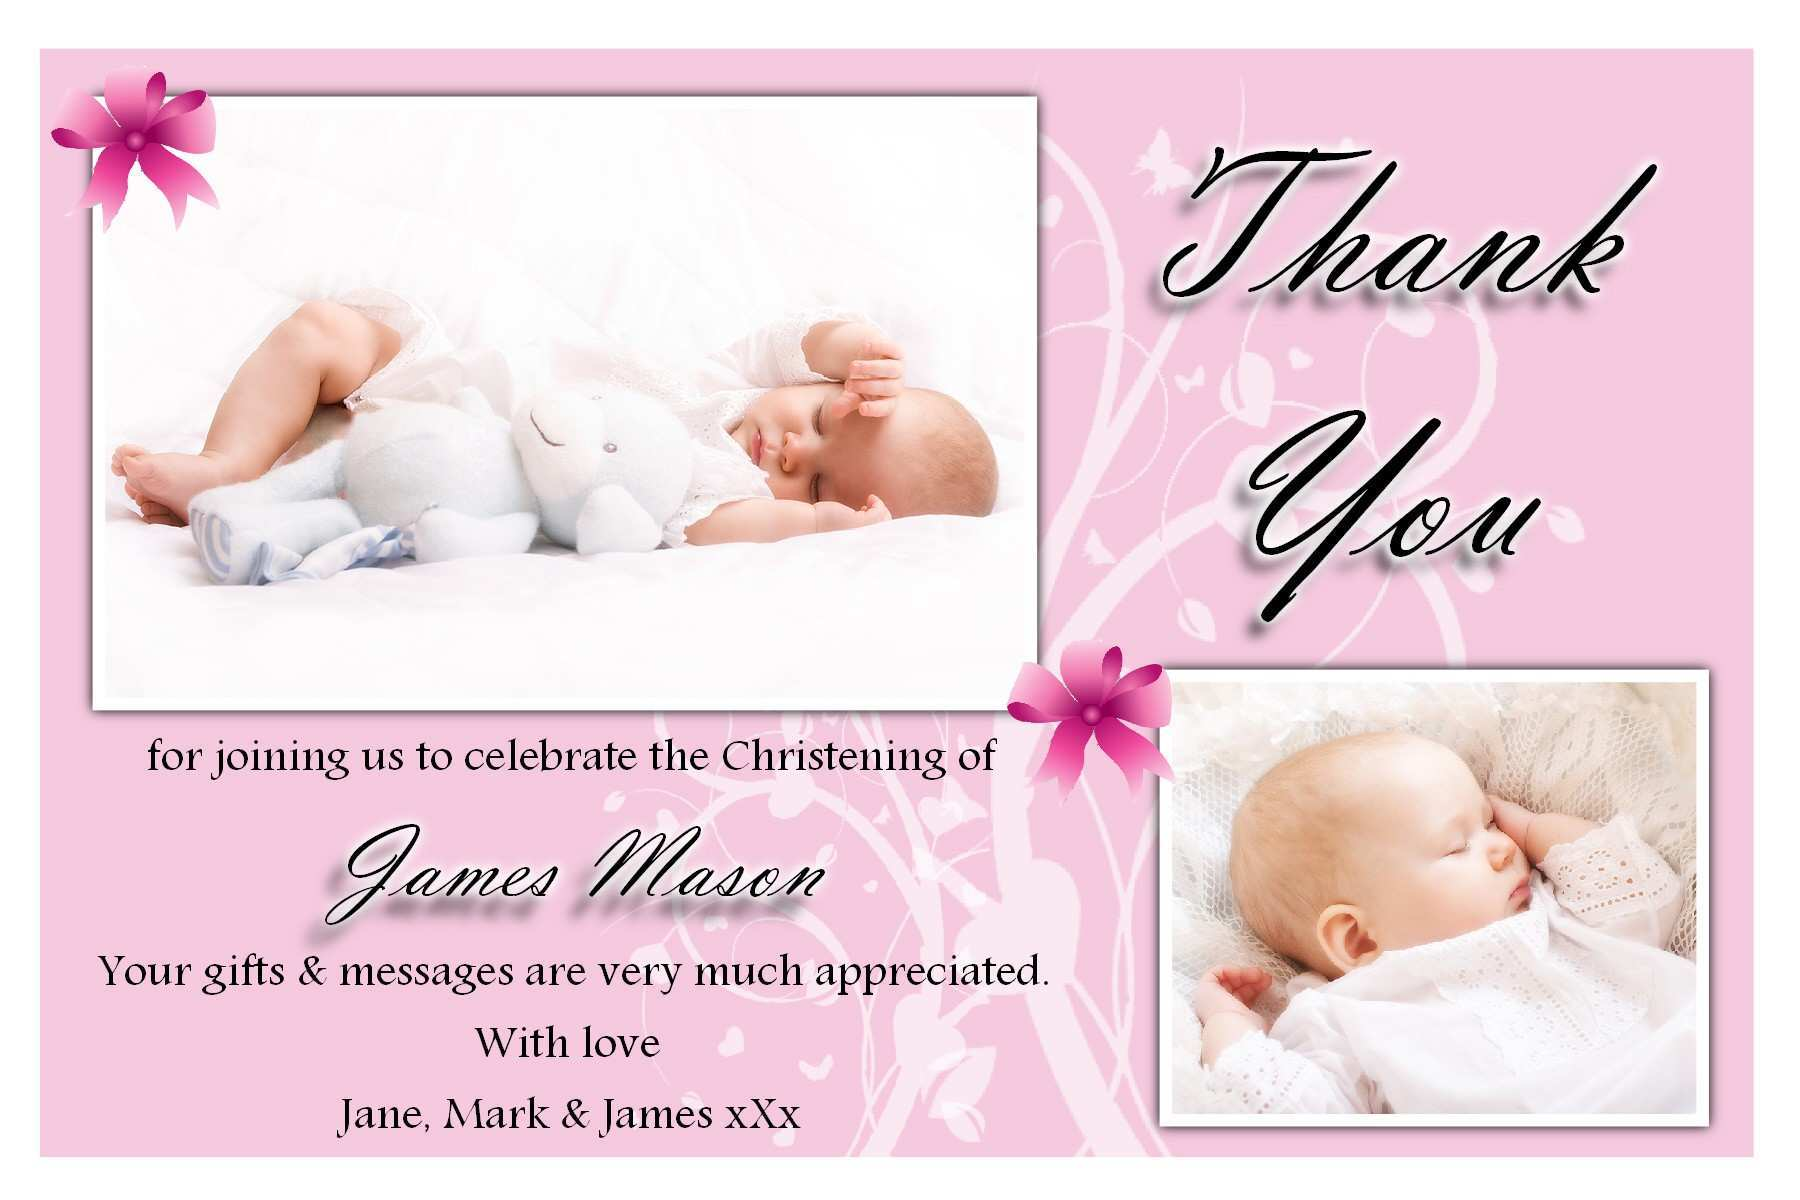 35 Free Printable Editable Christening Invitation For Baby Girl Blank Template With Stunning Design With Editable Christening Invitation For Baby Girl Blank Template Cards Design Templates